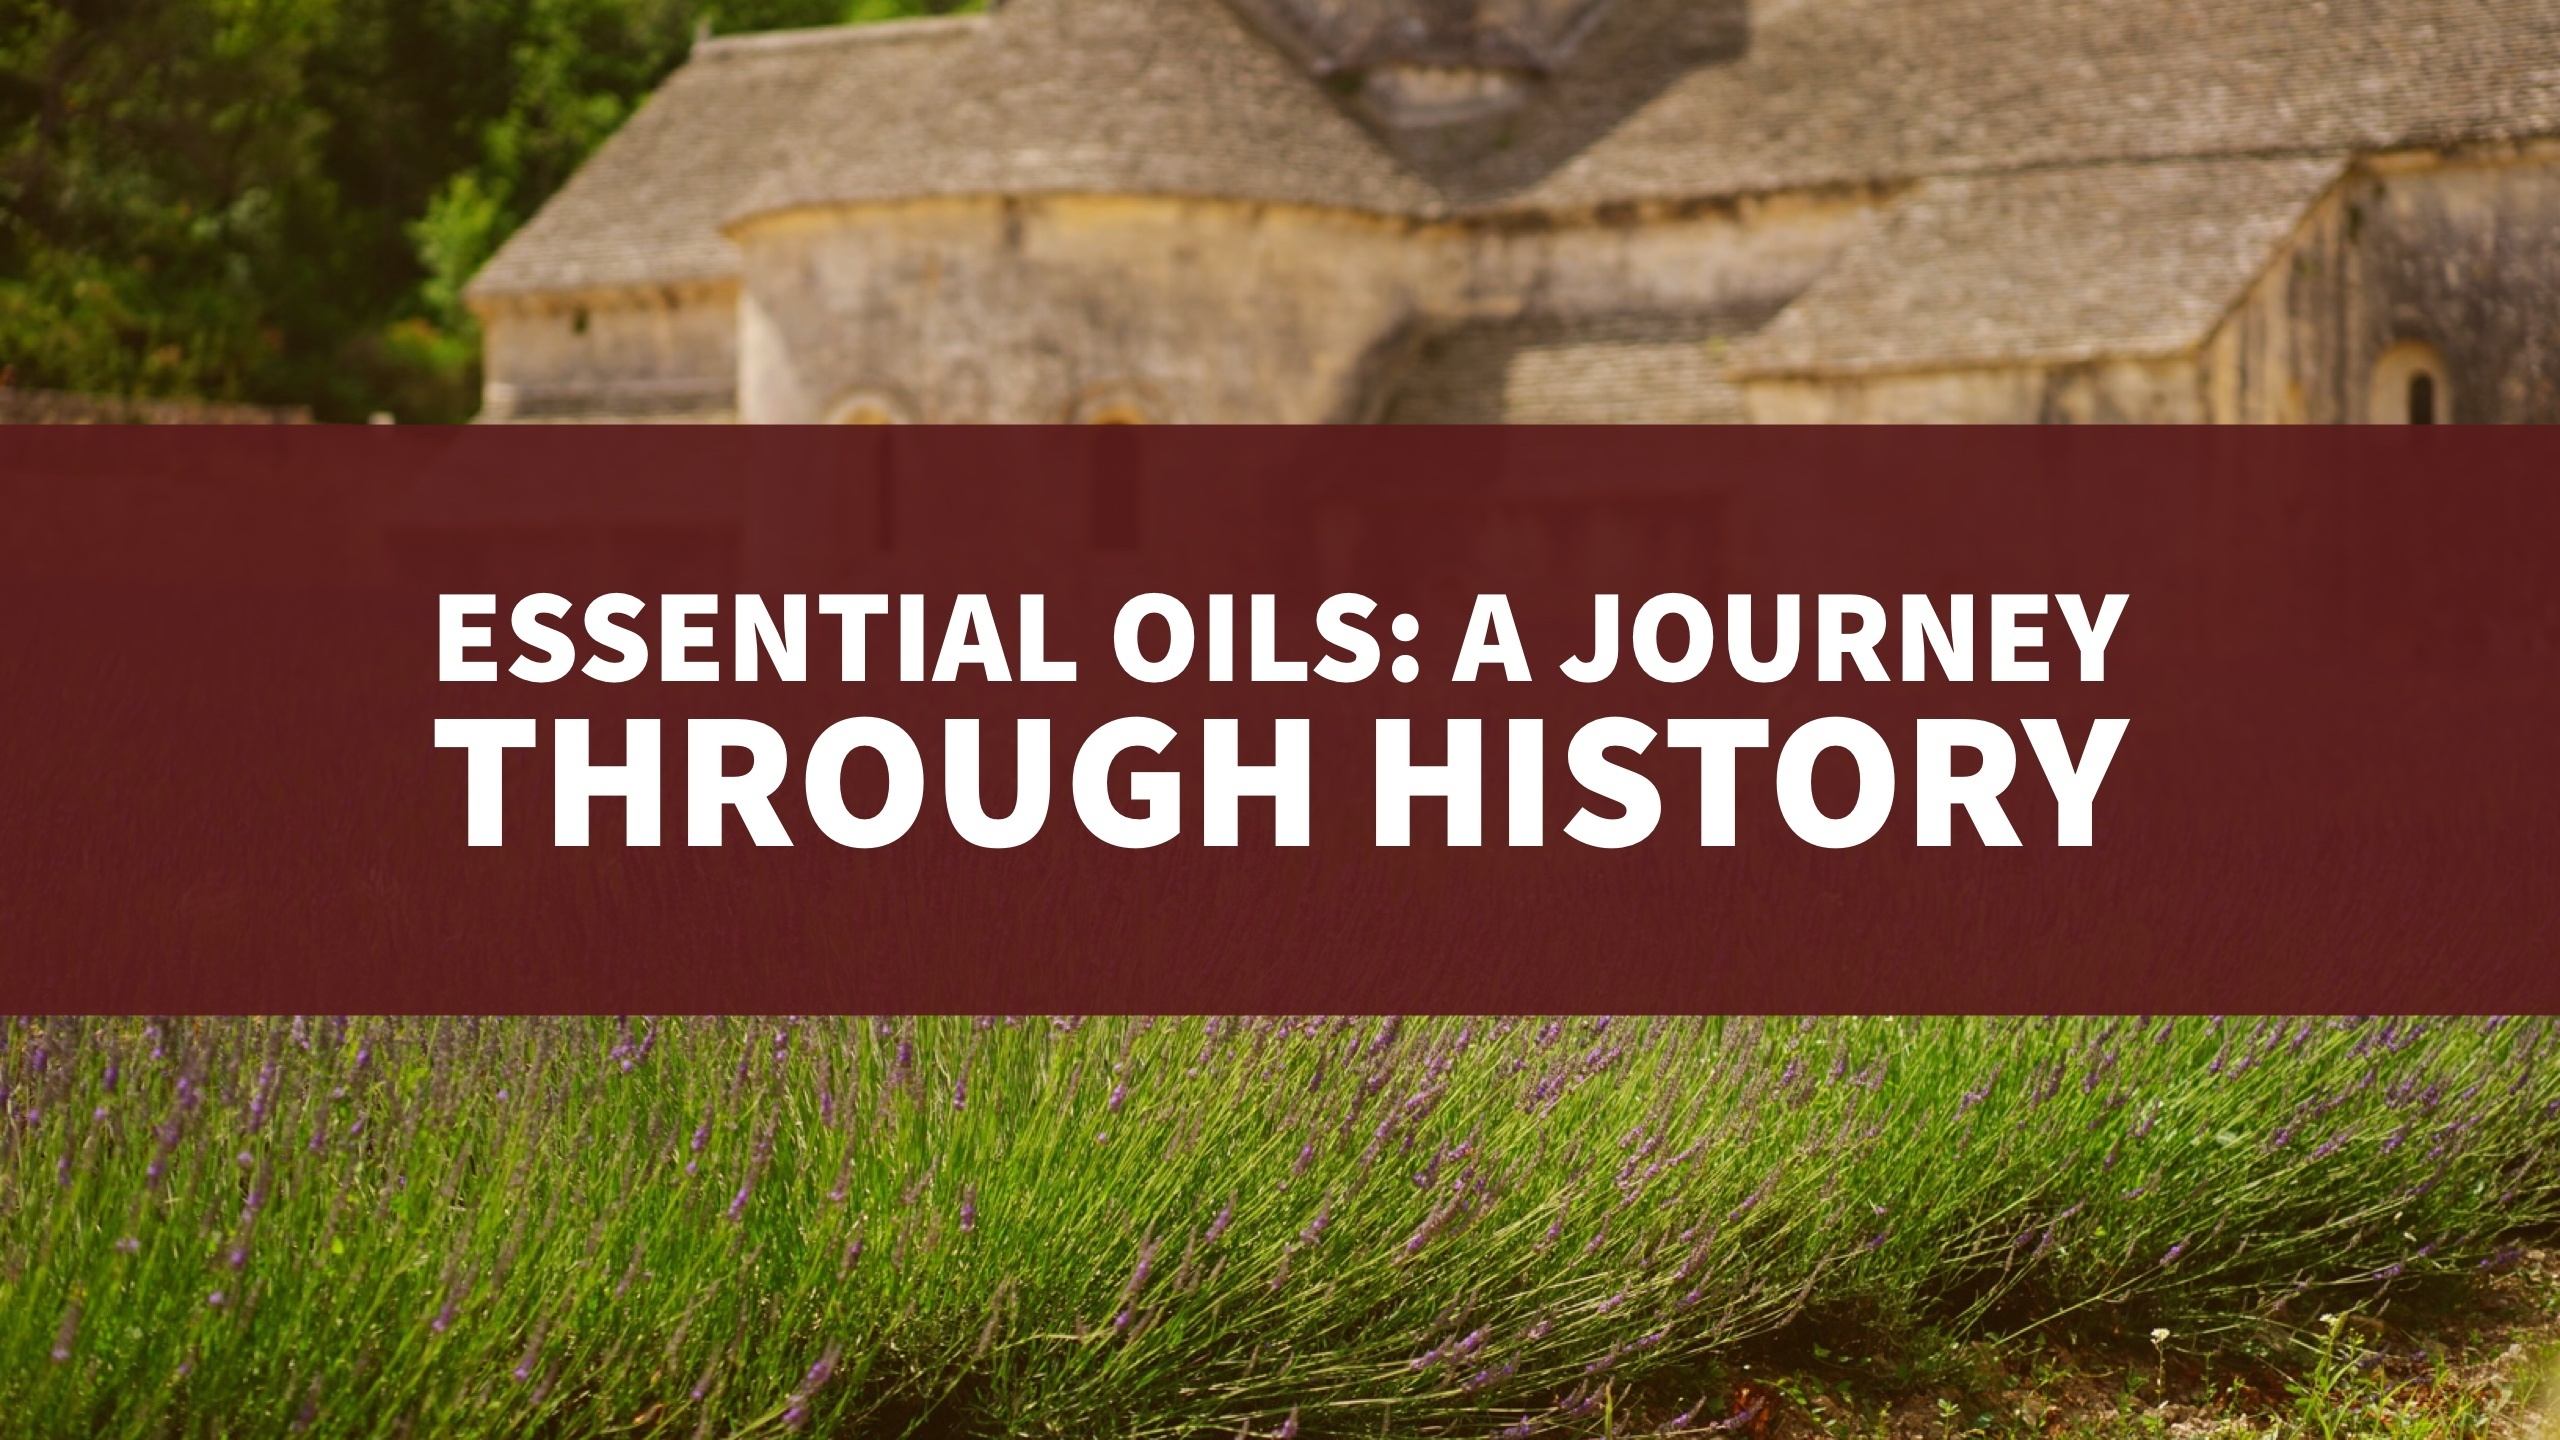 Essential Oils: A Journey Through History